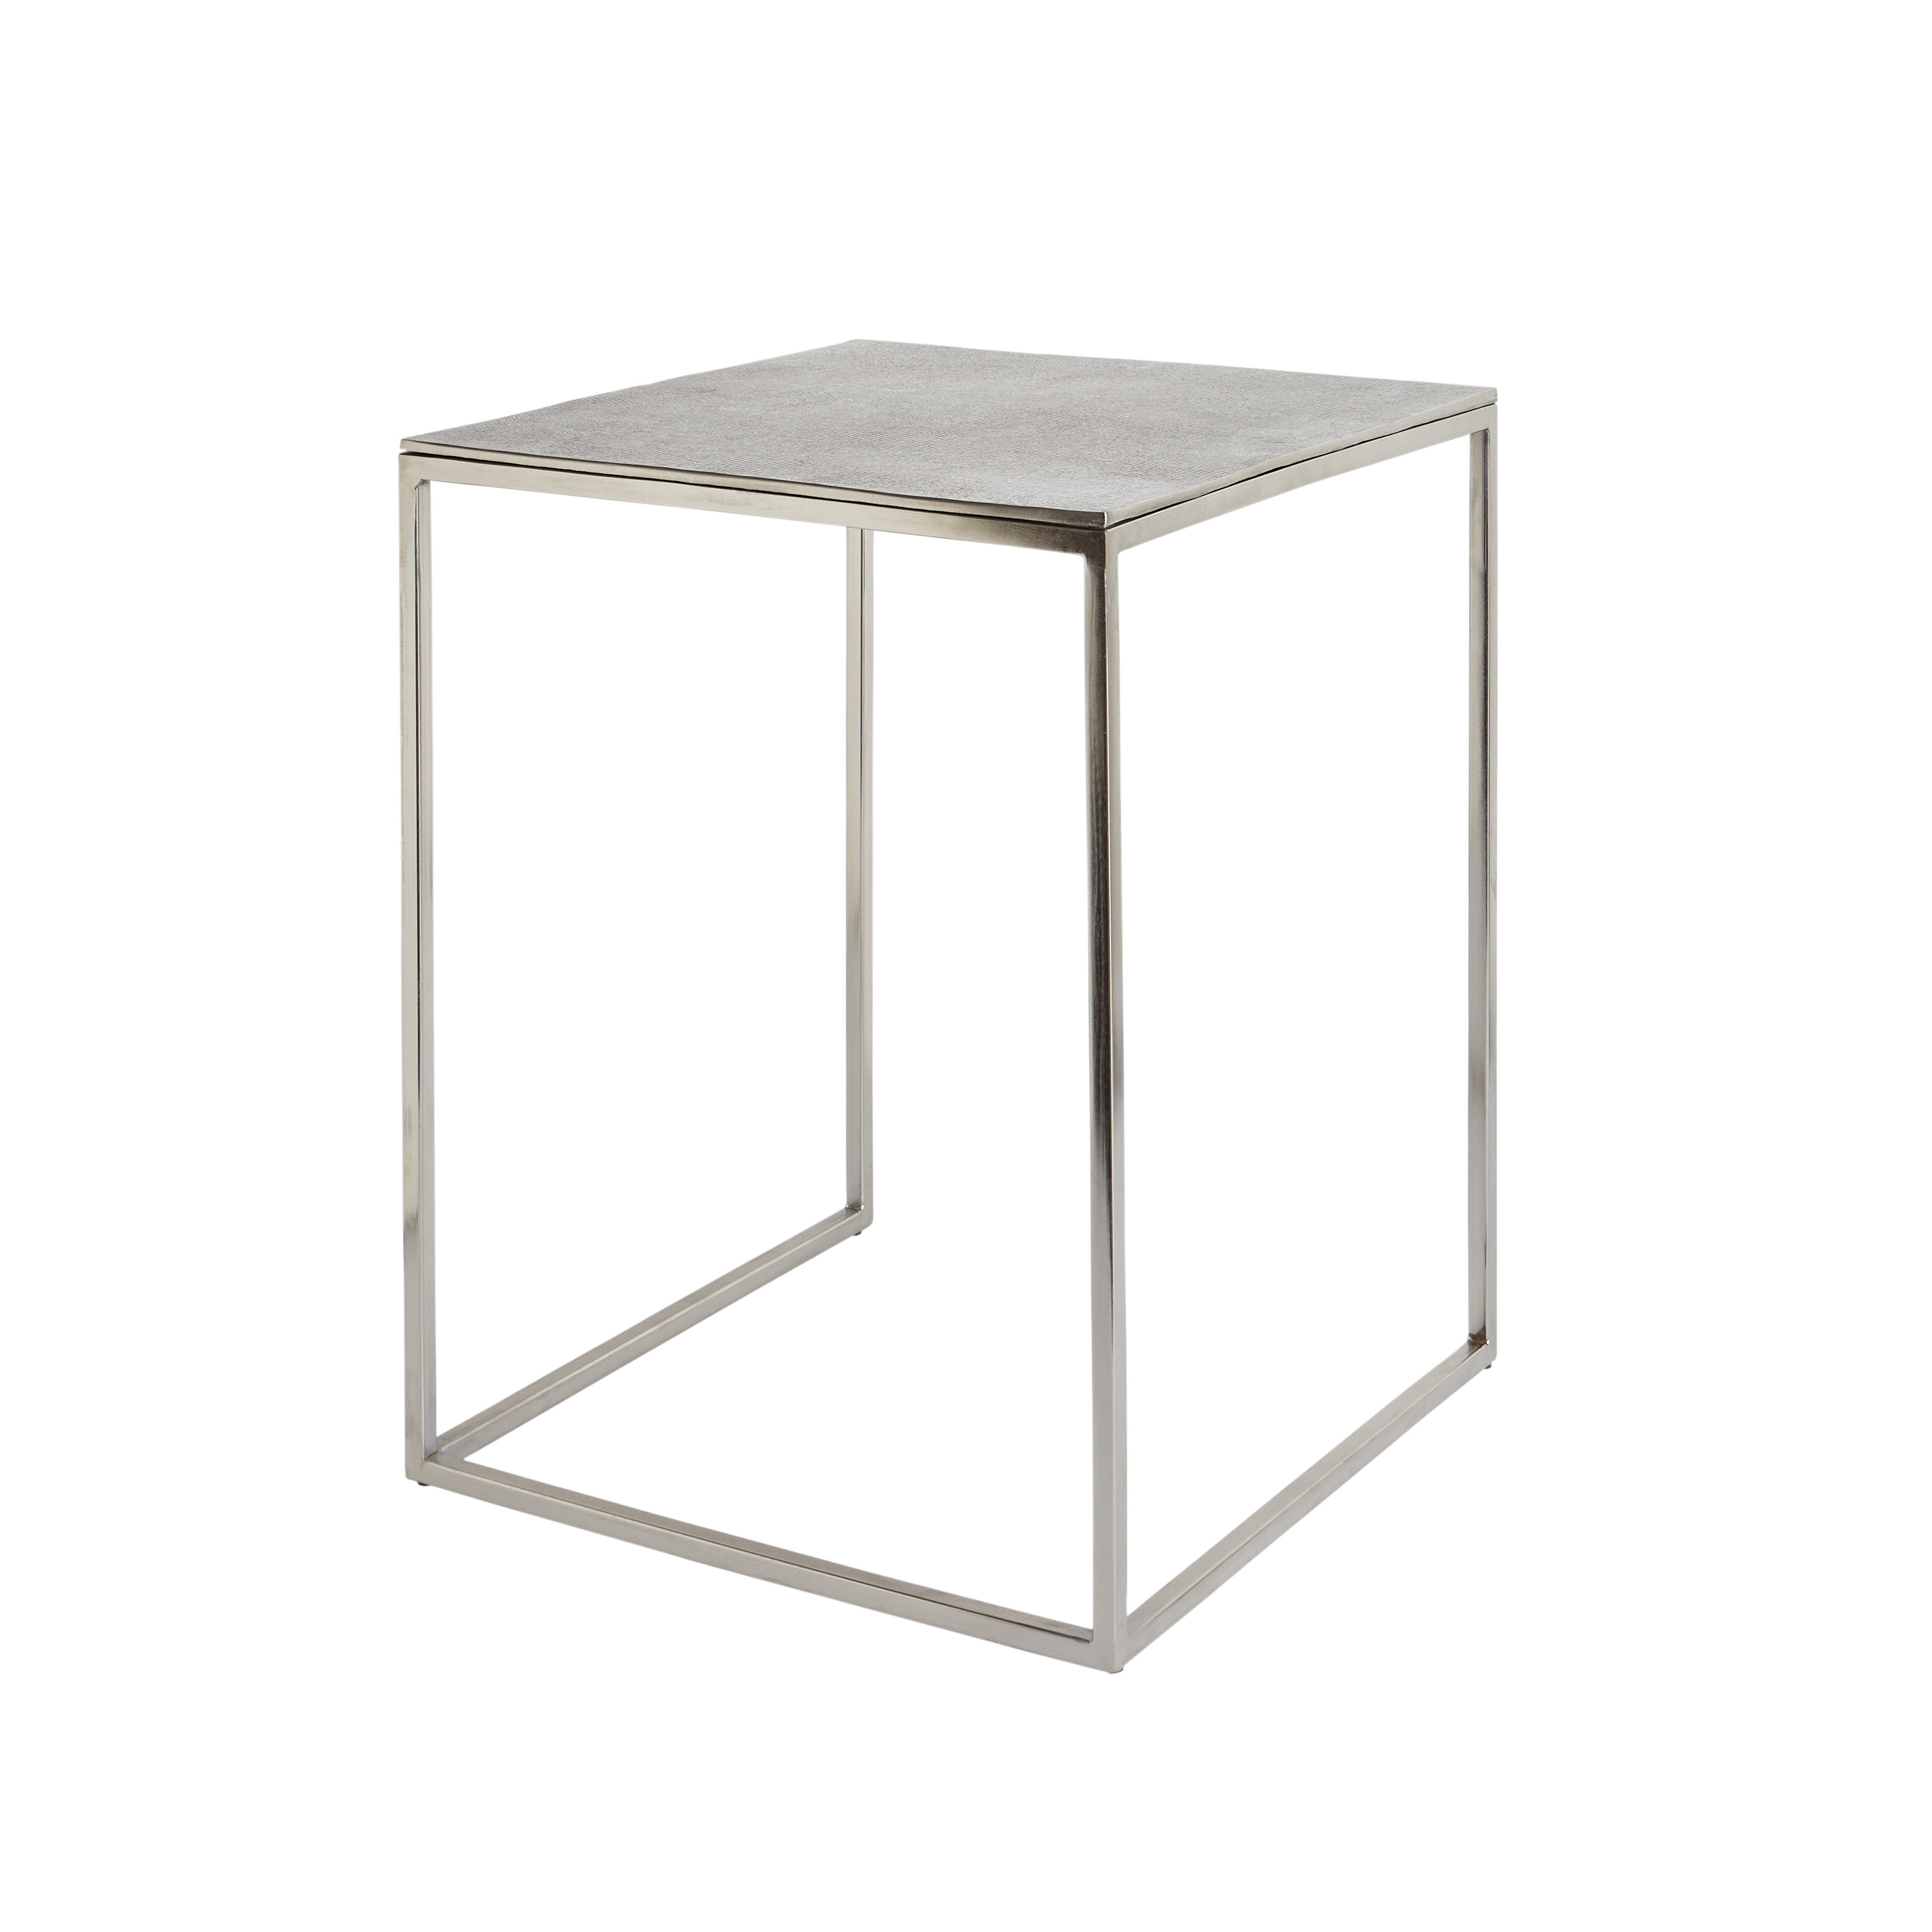 Coffee table in metallo cromato Snake, Grigio, large image number 0